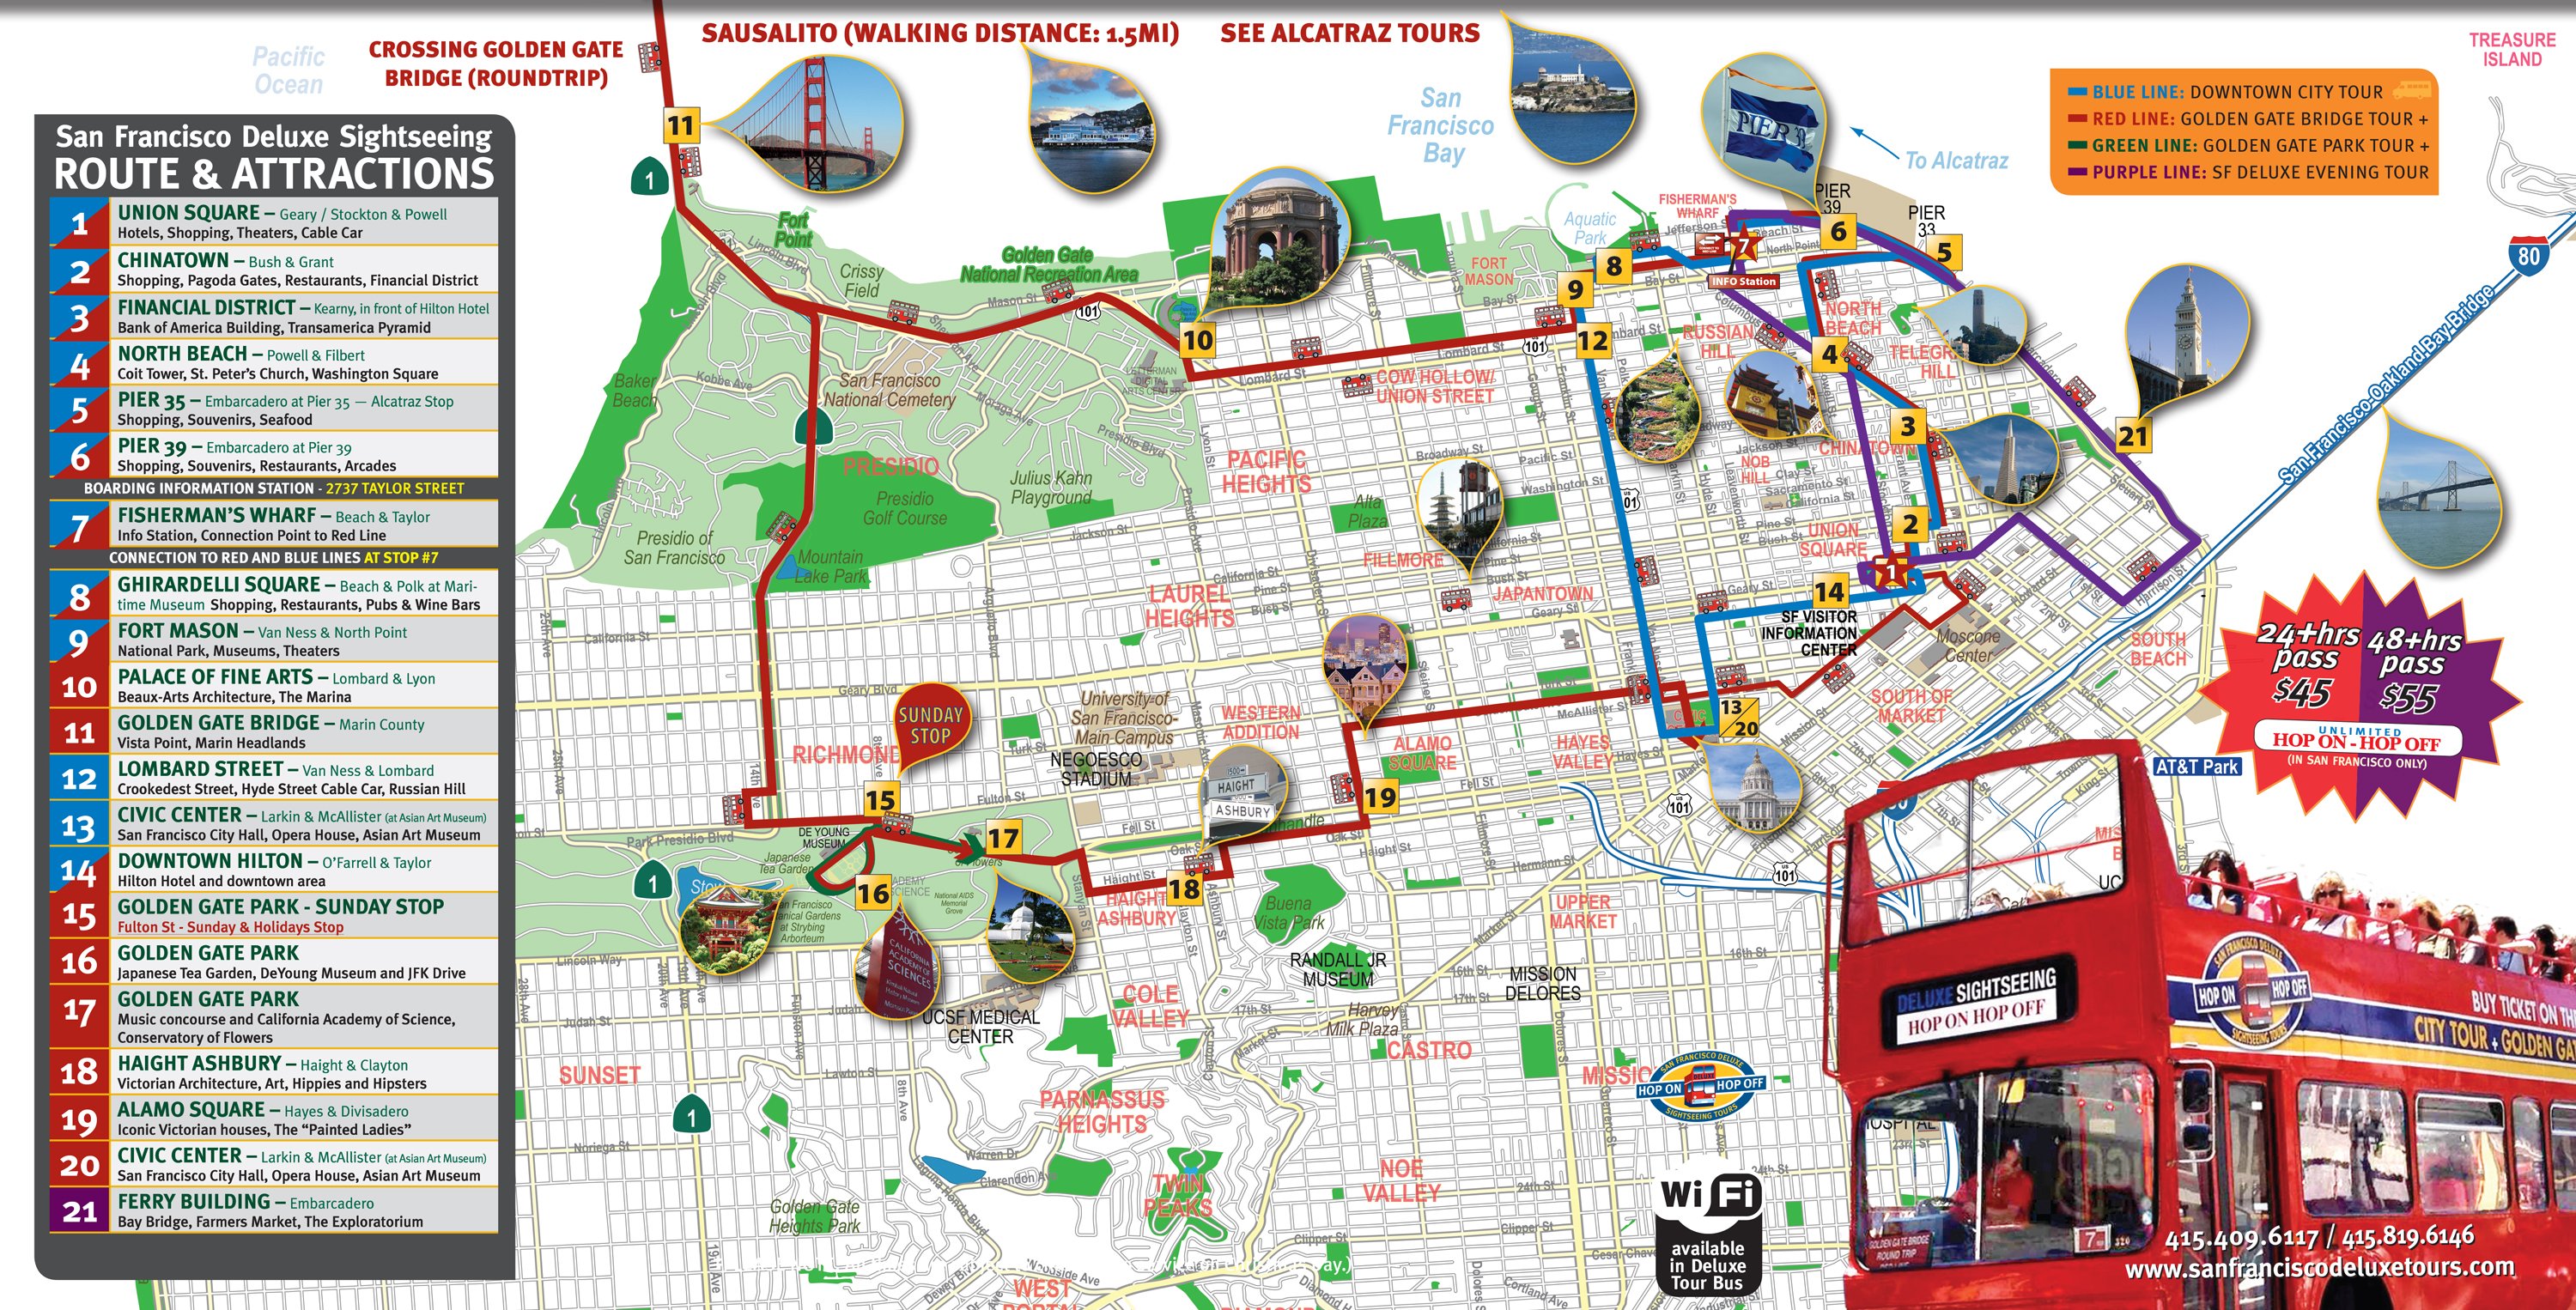 San francisco deluxe sightseeing tour routes publicscrutiny Image collections